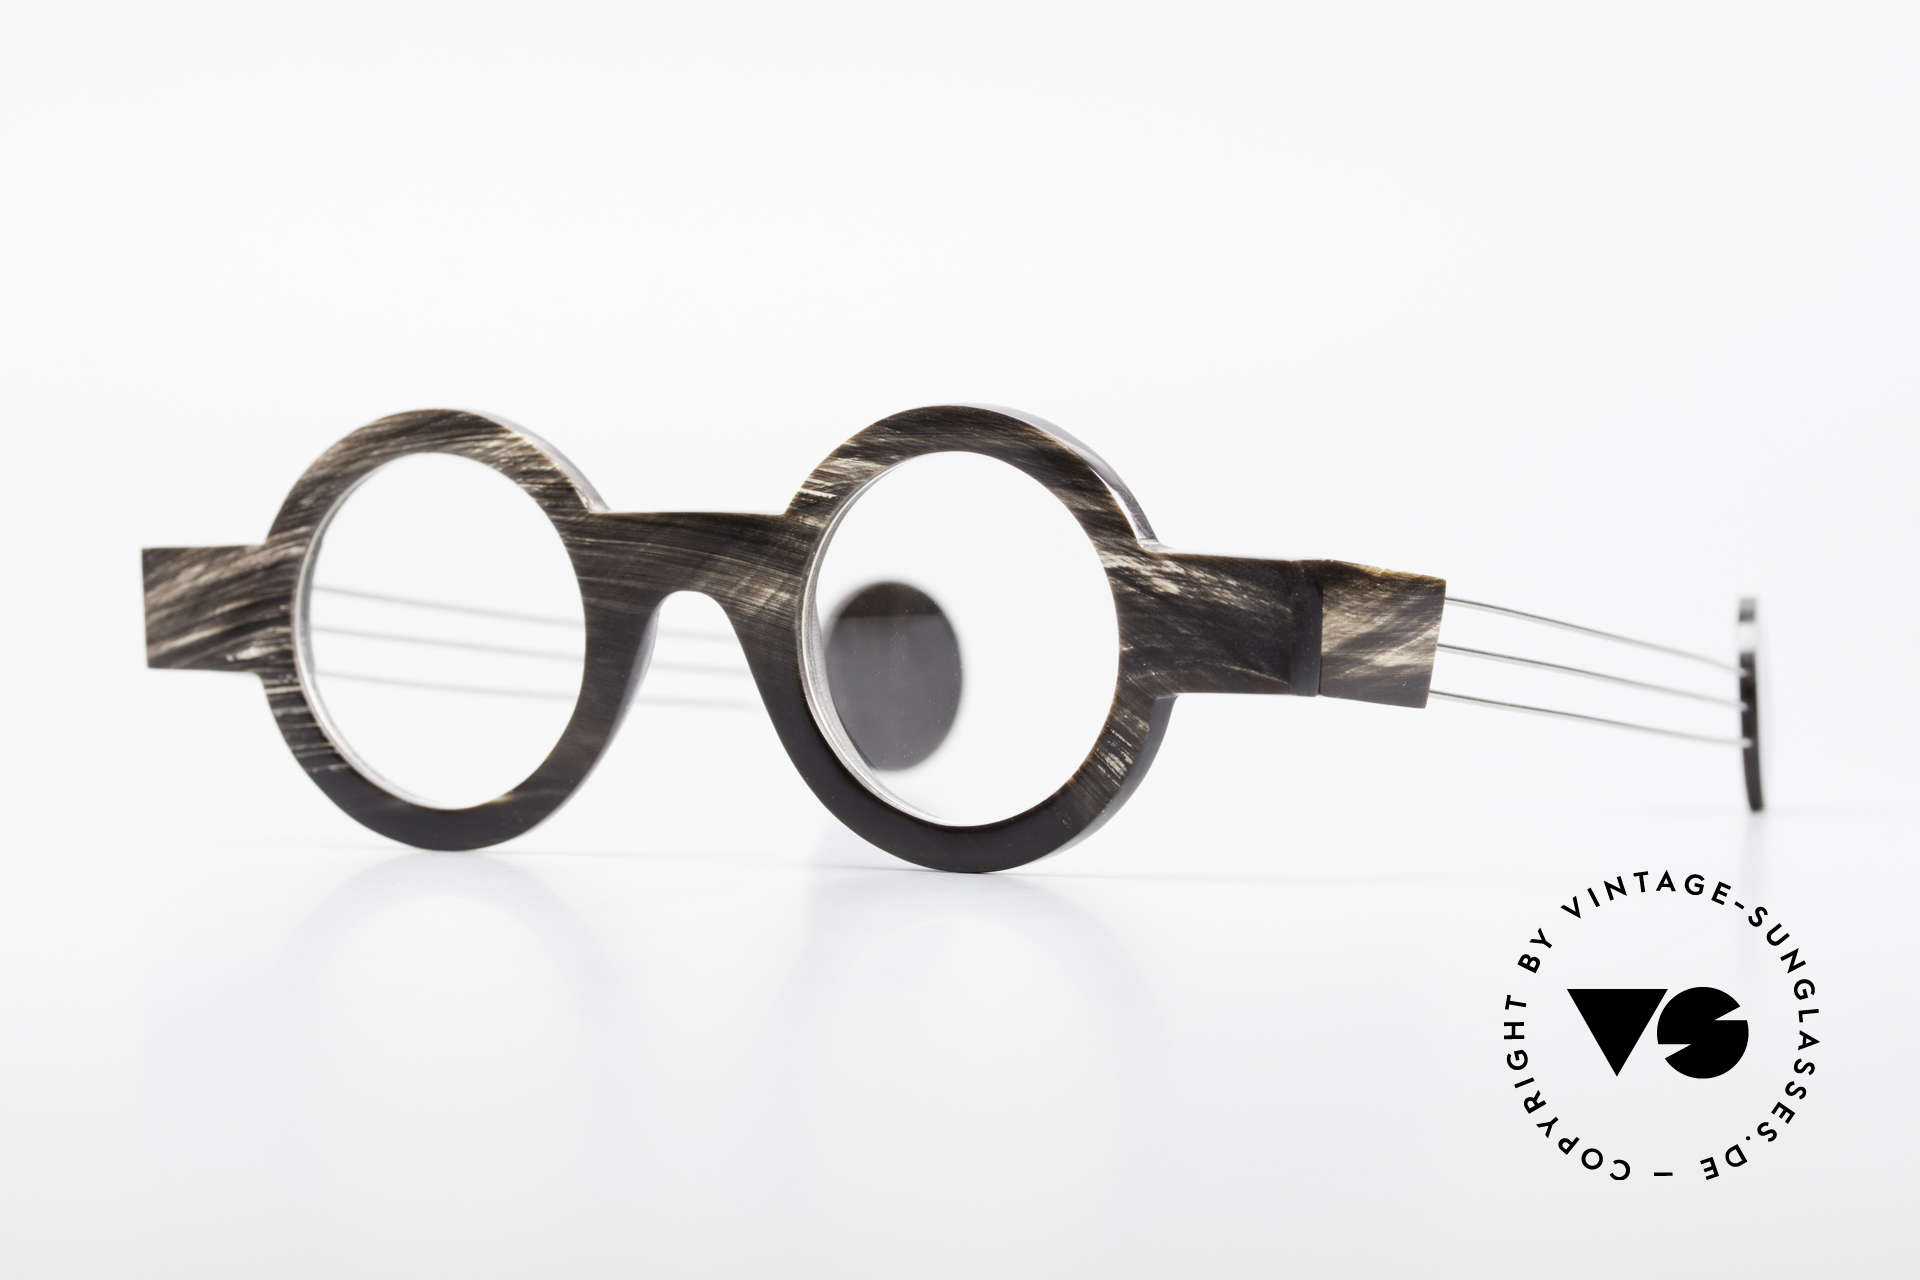 P. Klenk Bold 023 Horn Frame Twistable Temples, striking round horn eyeglass-frame by P. Klenk from 1994, Made for Men and Women